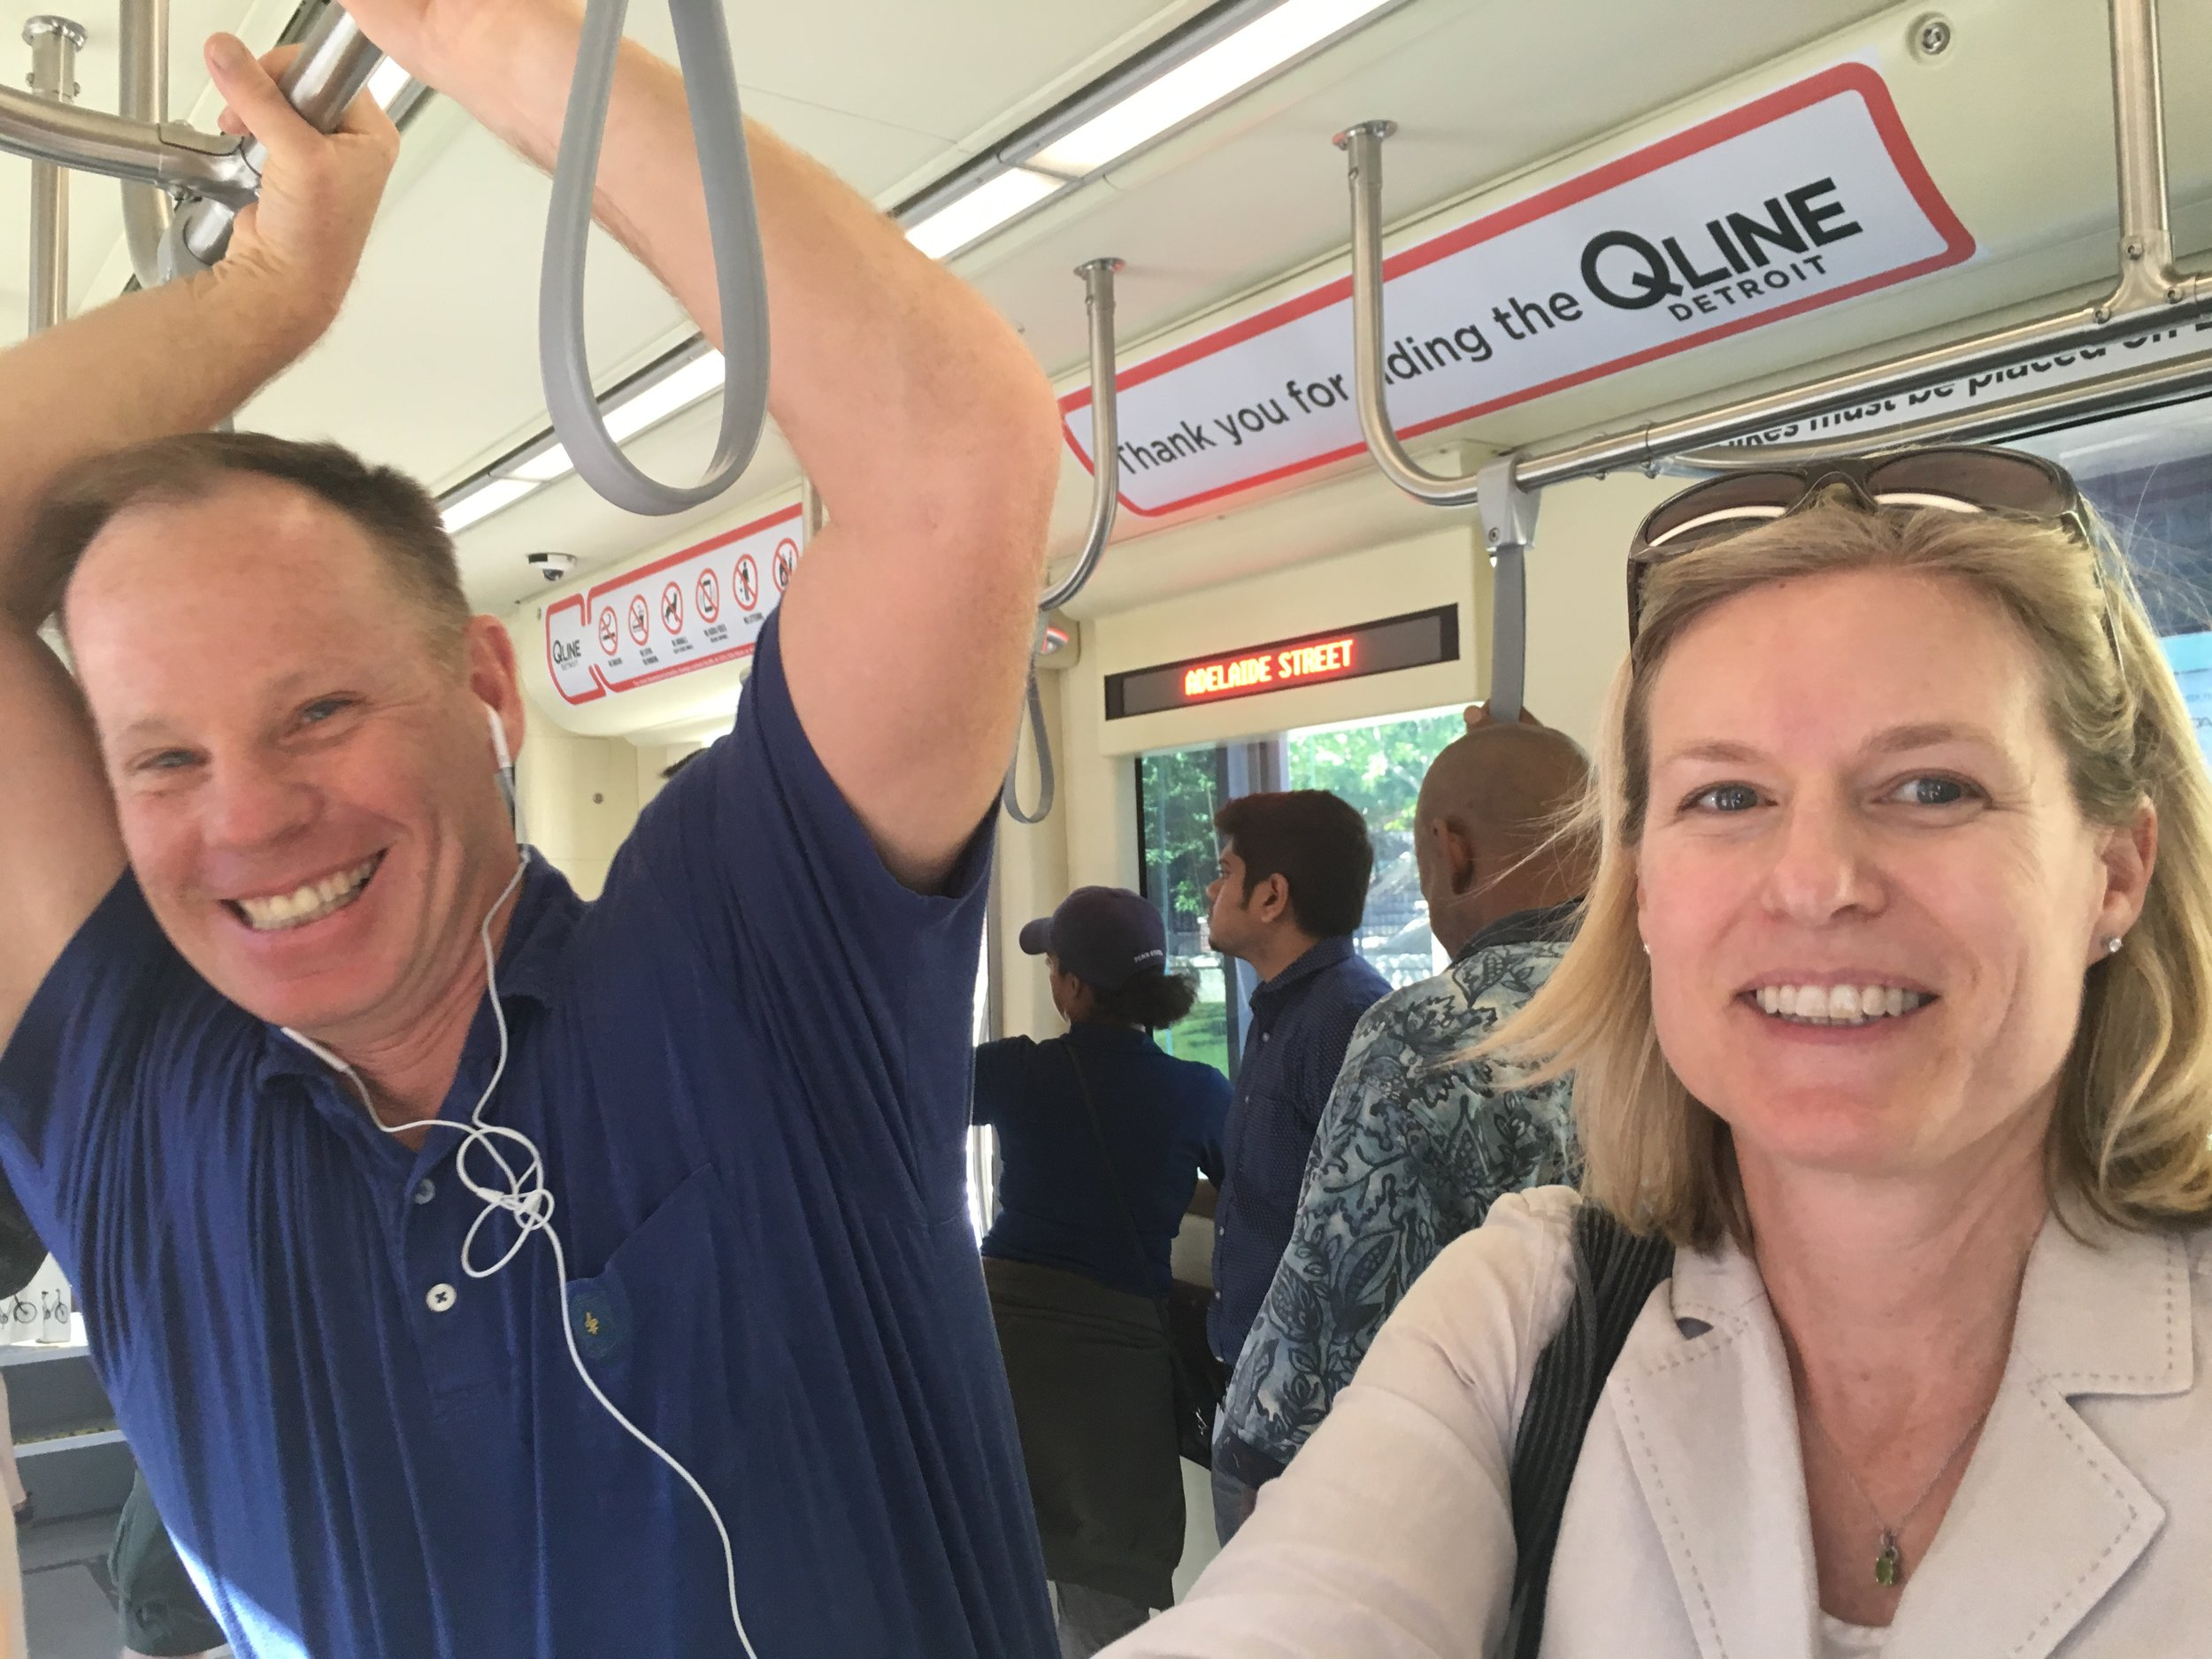 Riding the QLine to an HLMS dinner event.